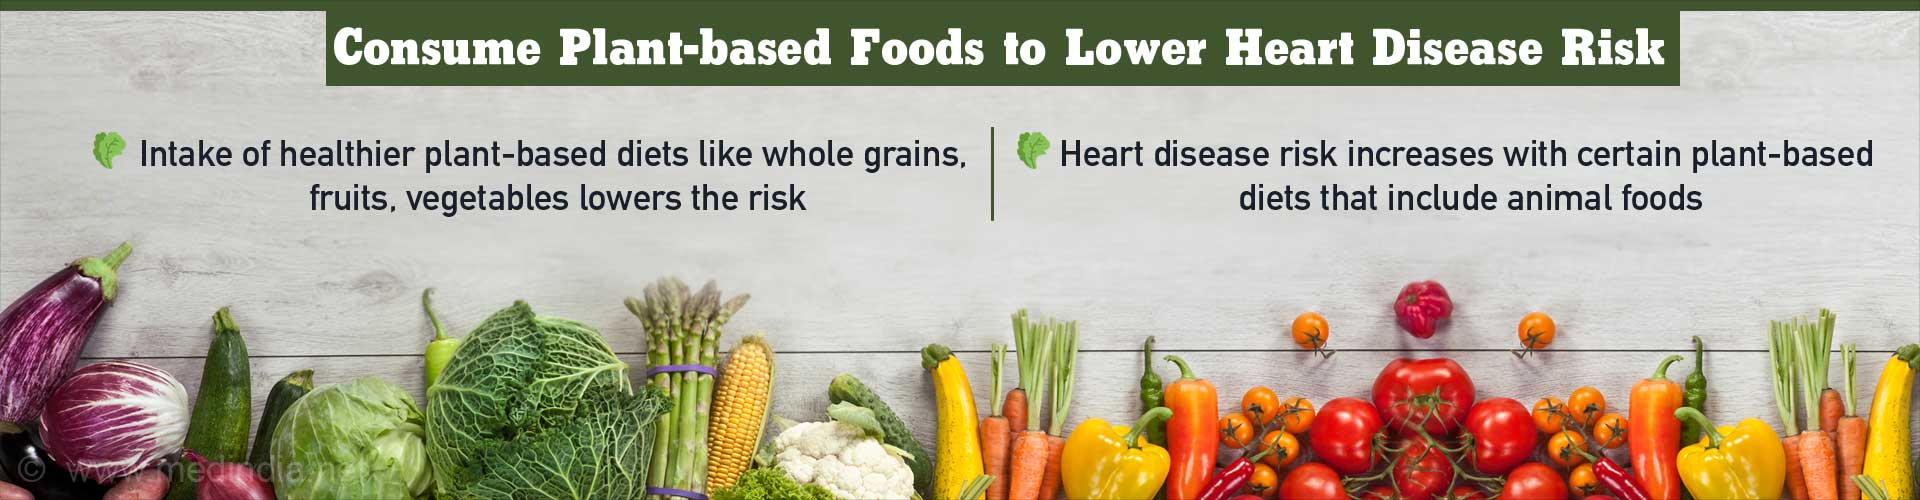 Consume Plant-based Foods to Lower Heart Disease Risk